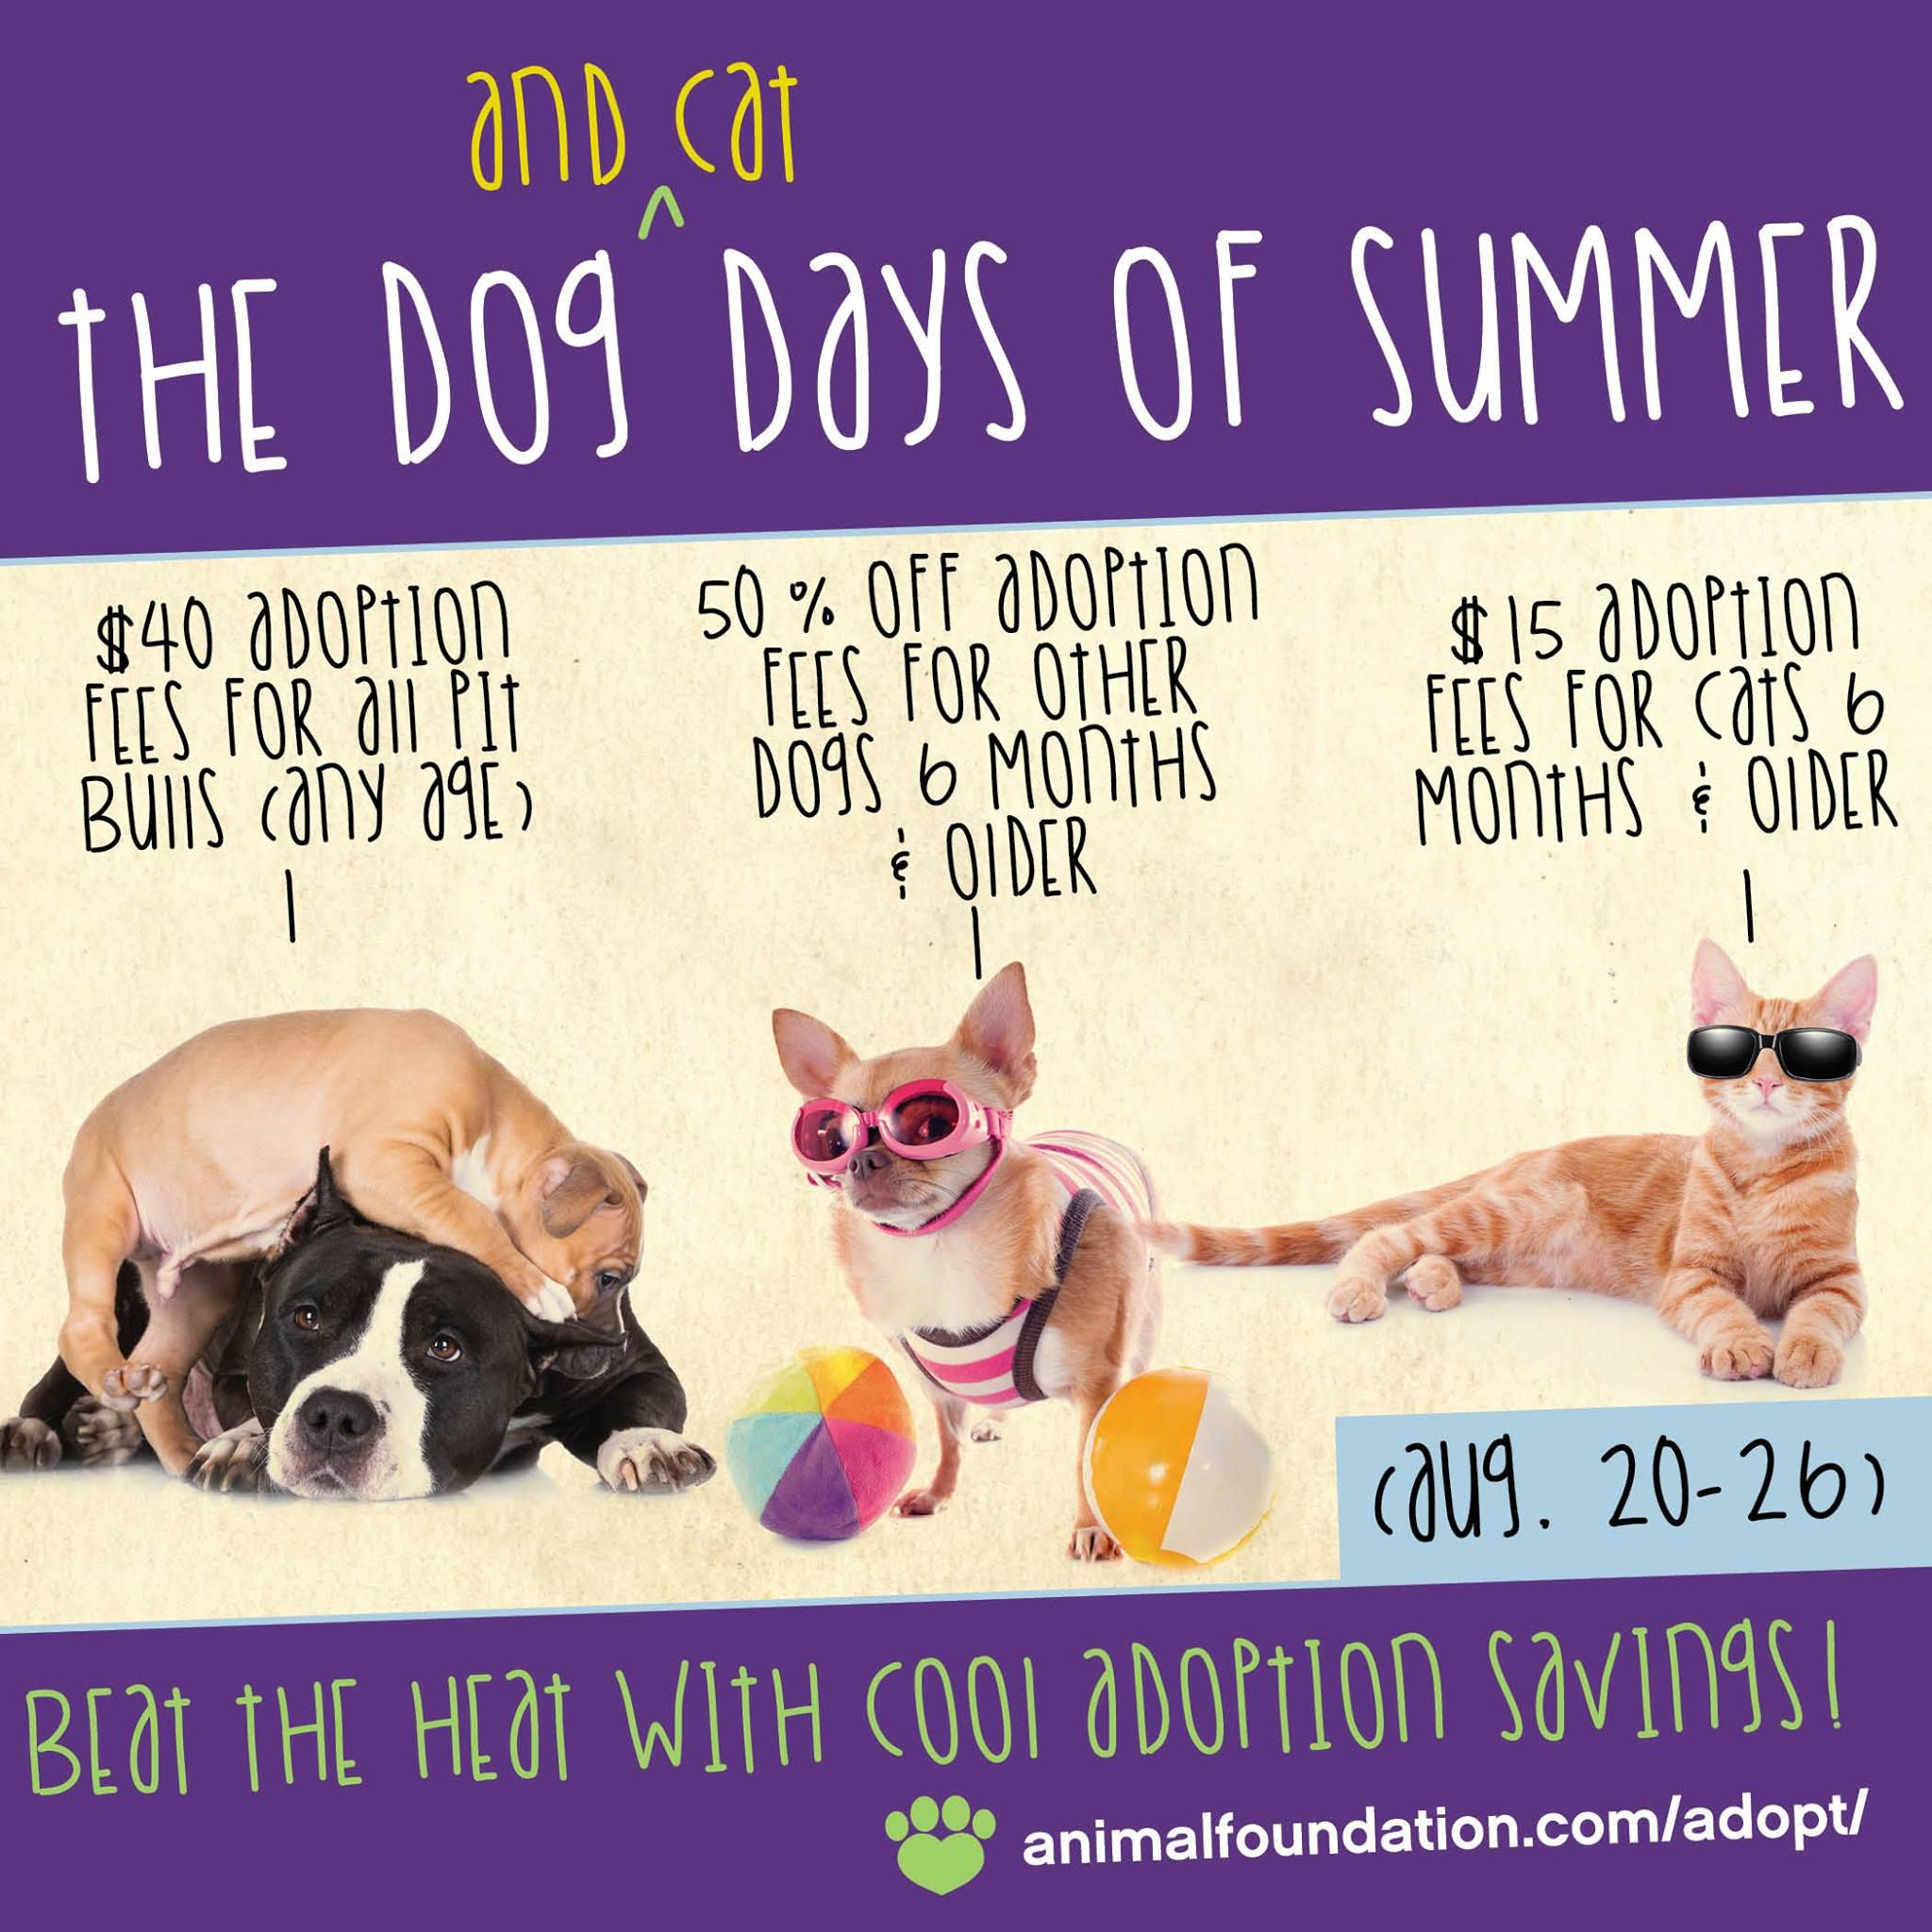 Beat The Heat With Cool Deals During Our Dog And Cat Days Of Summer Adoption Special Beginning Today Through 8 26 40 Ado Cat Day Adoption Pets Online